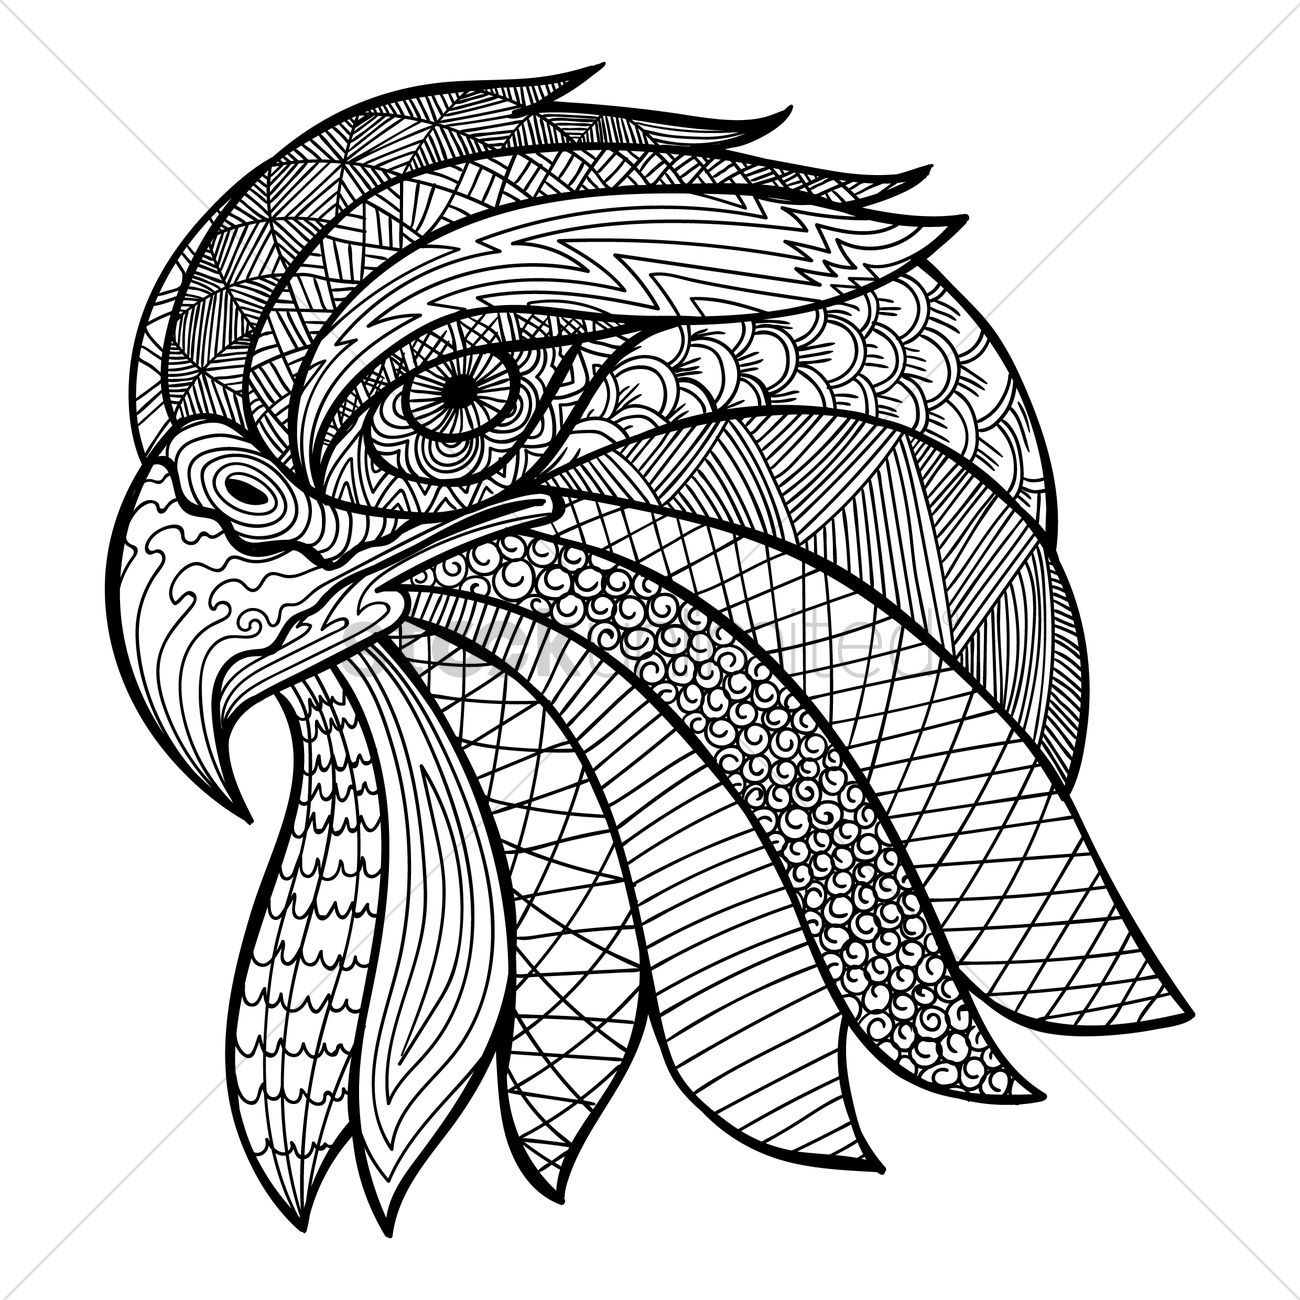 coloring pages intricate patterns illustrator - photo#22